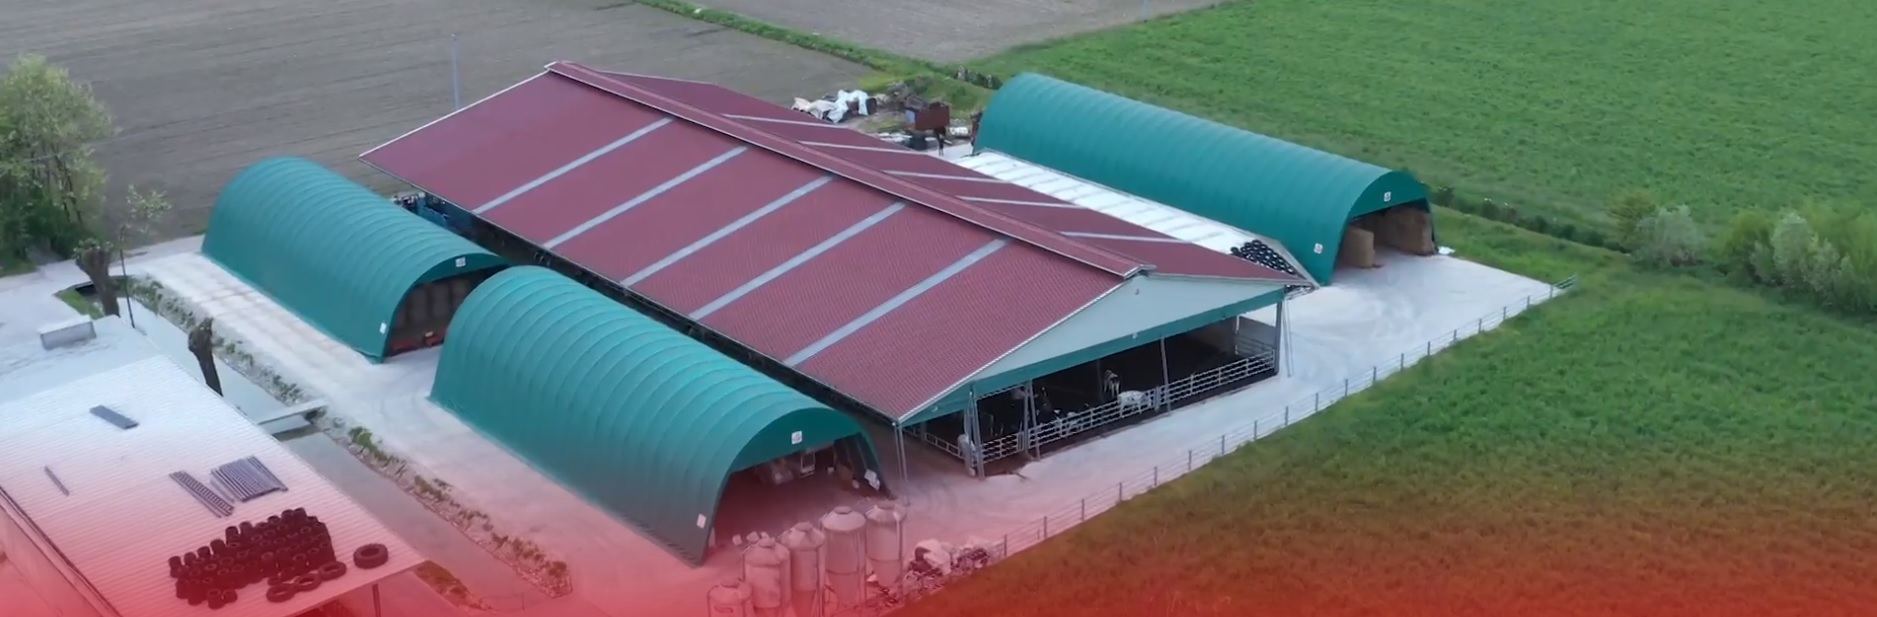 Due A Livestock and Farming Structure Manufacturers